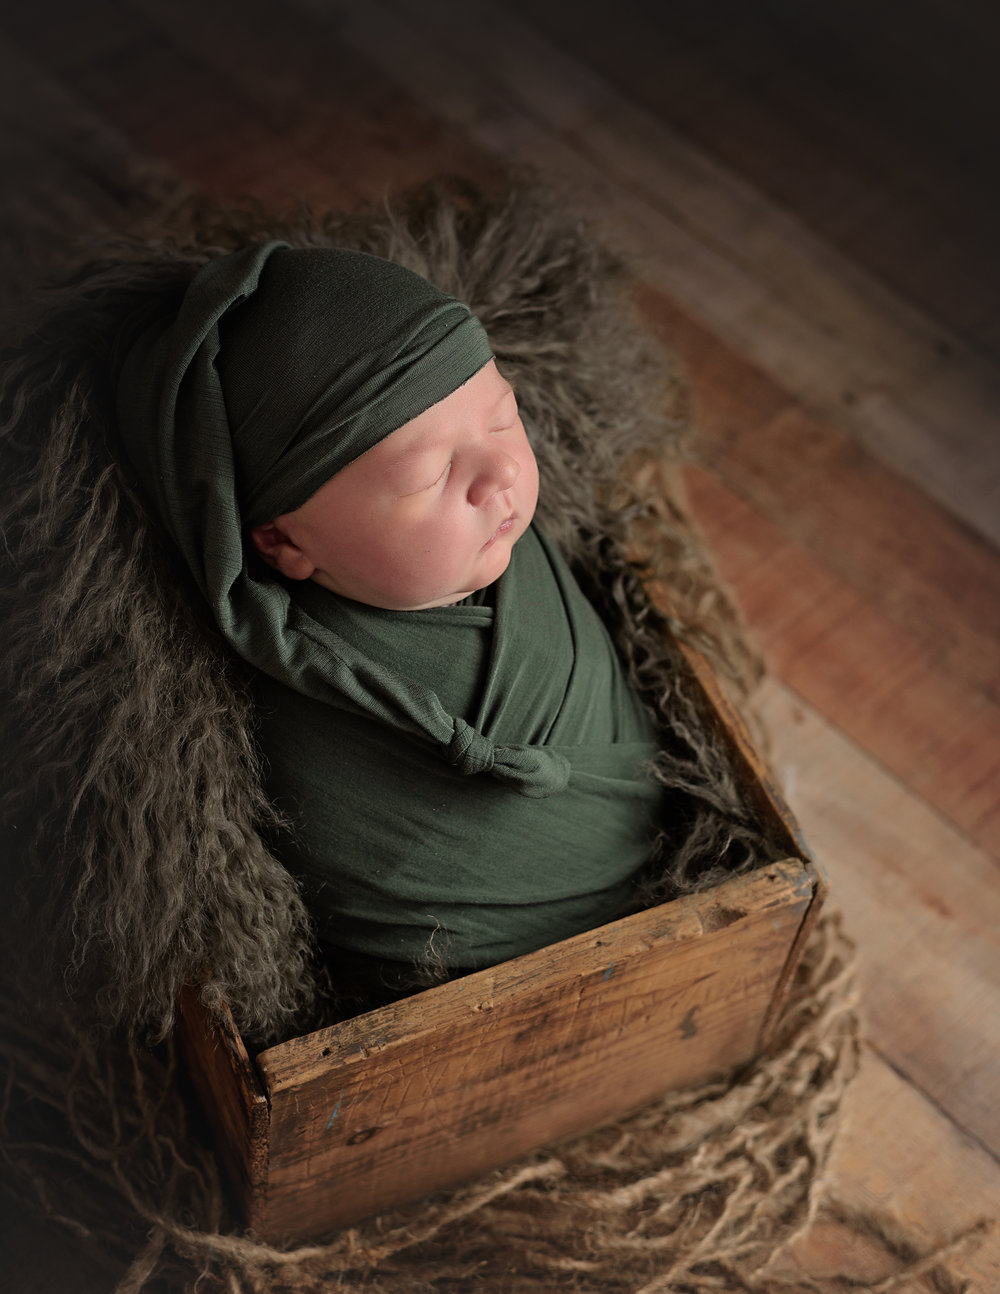 Northfield_Newborn_Photographer9.jpg